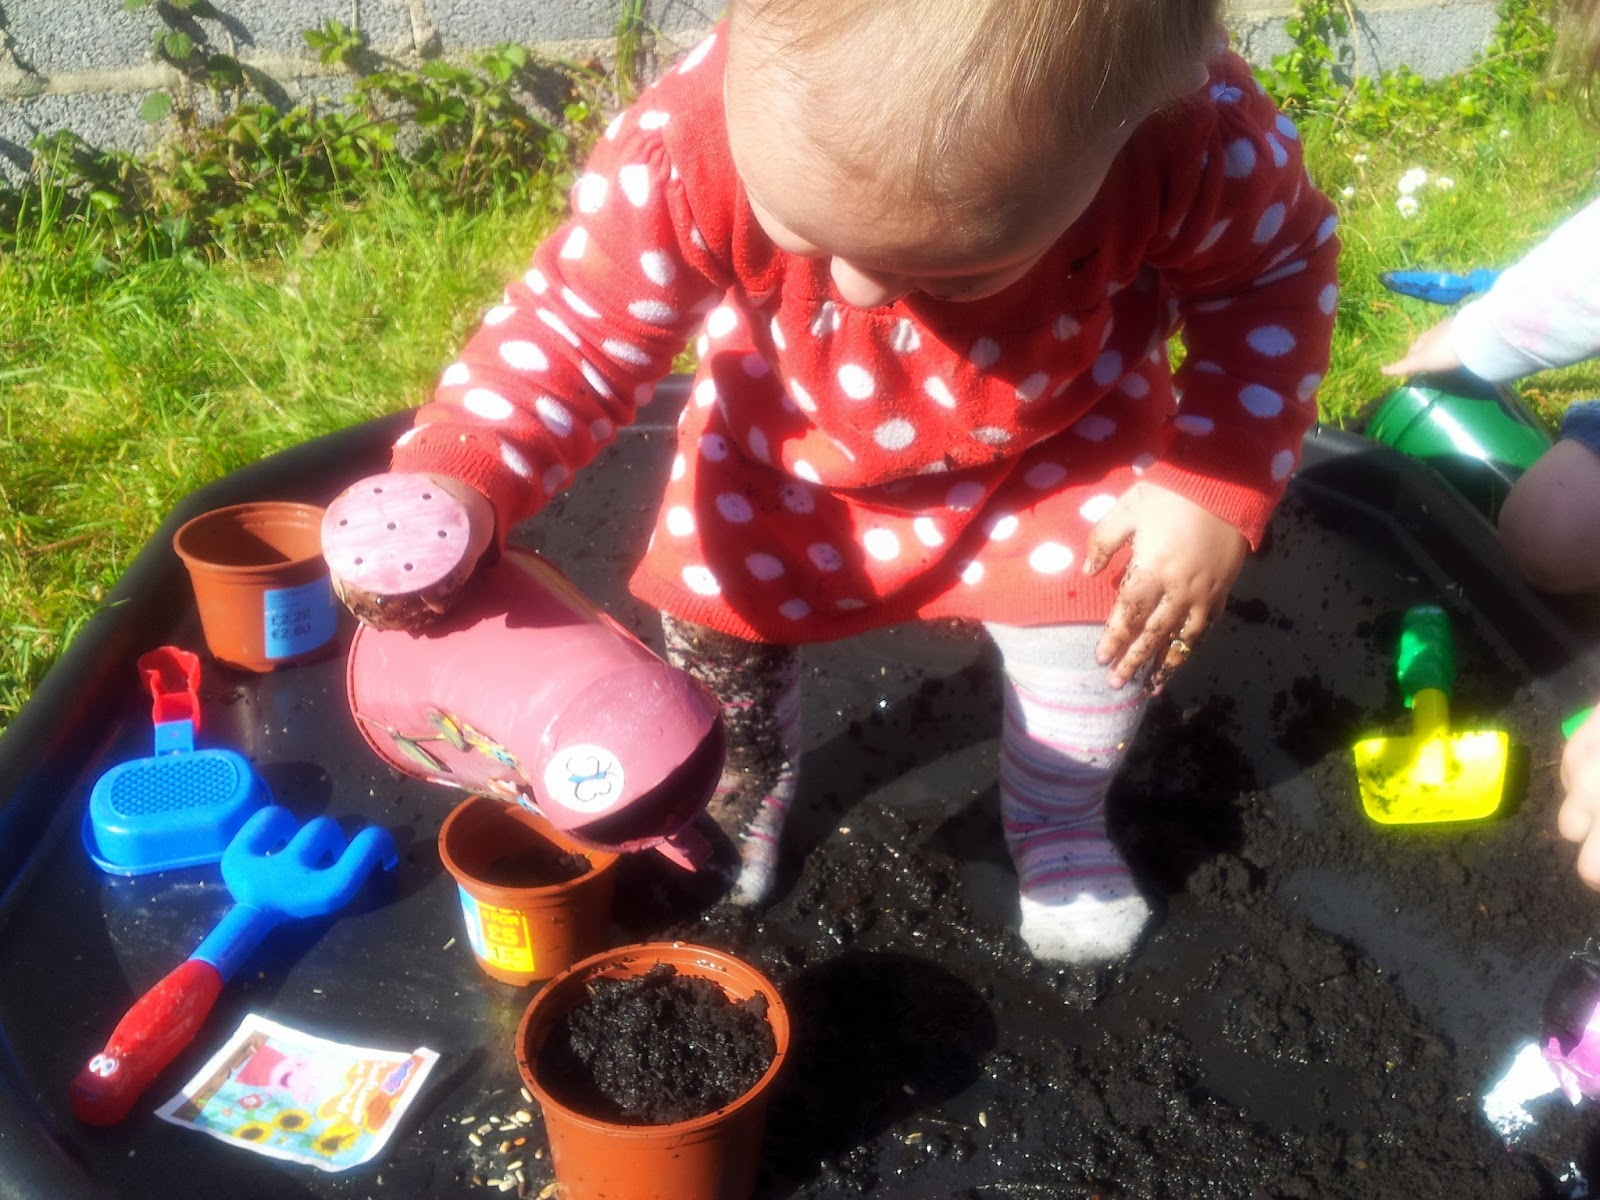 Growing tomato sunflower seeds messy play matilda mae sensory outdoor learning